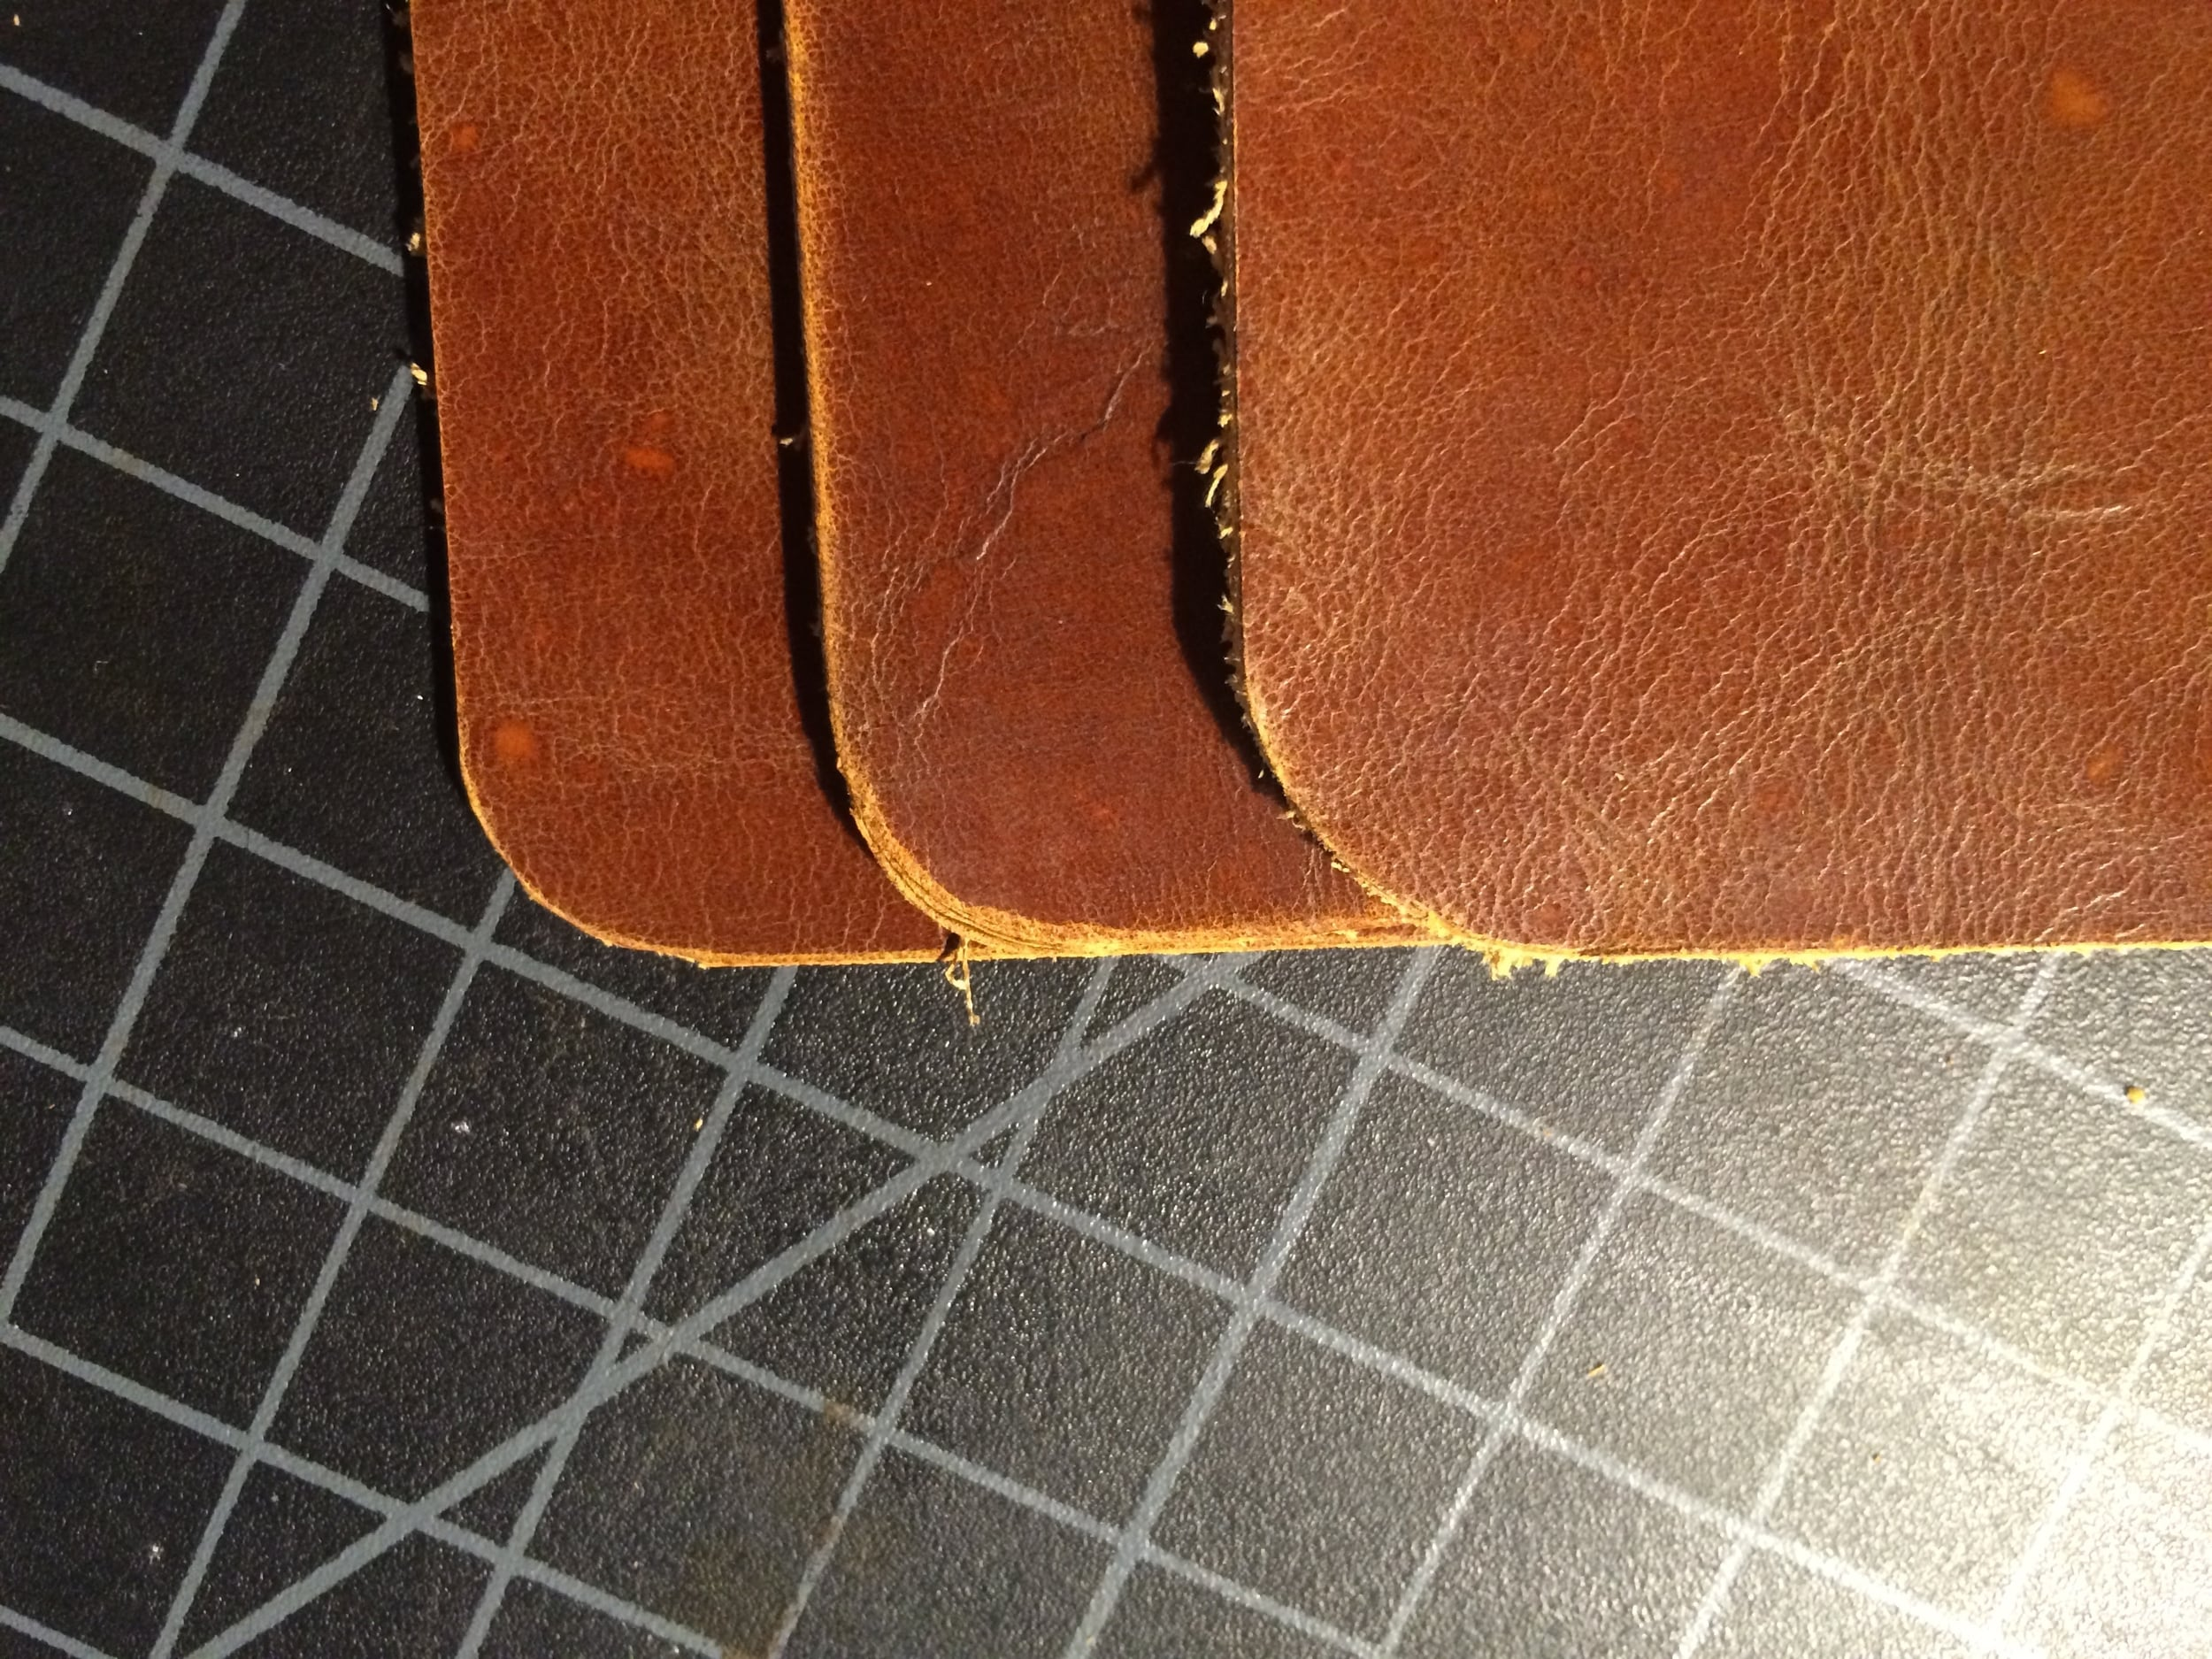 Here are the three methods side by side. The left is the multiple cuts, the middle is free hand, and the right was made using the washer. For me, the washer edge turned out the best (click to enlarge).